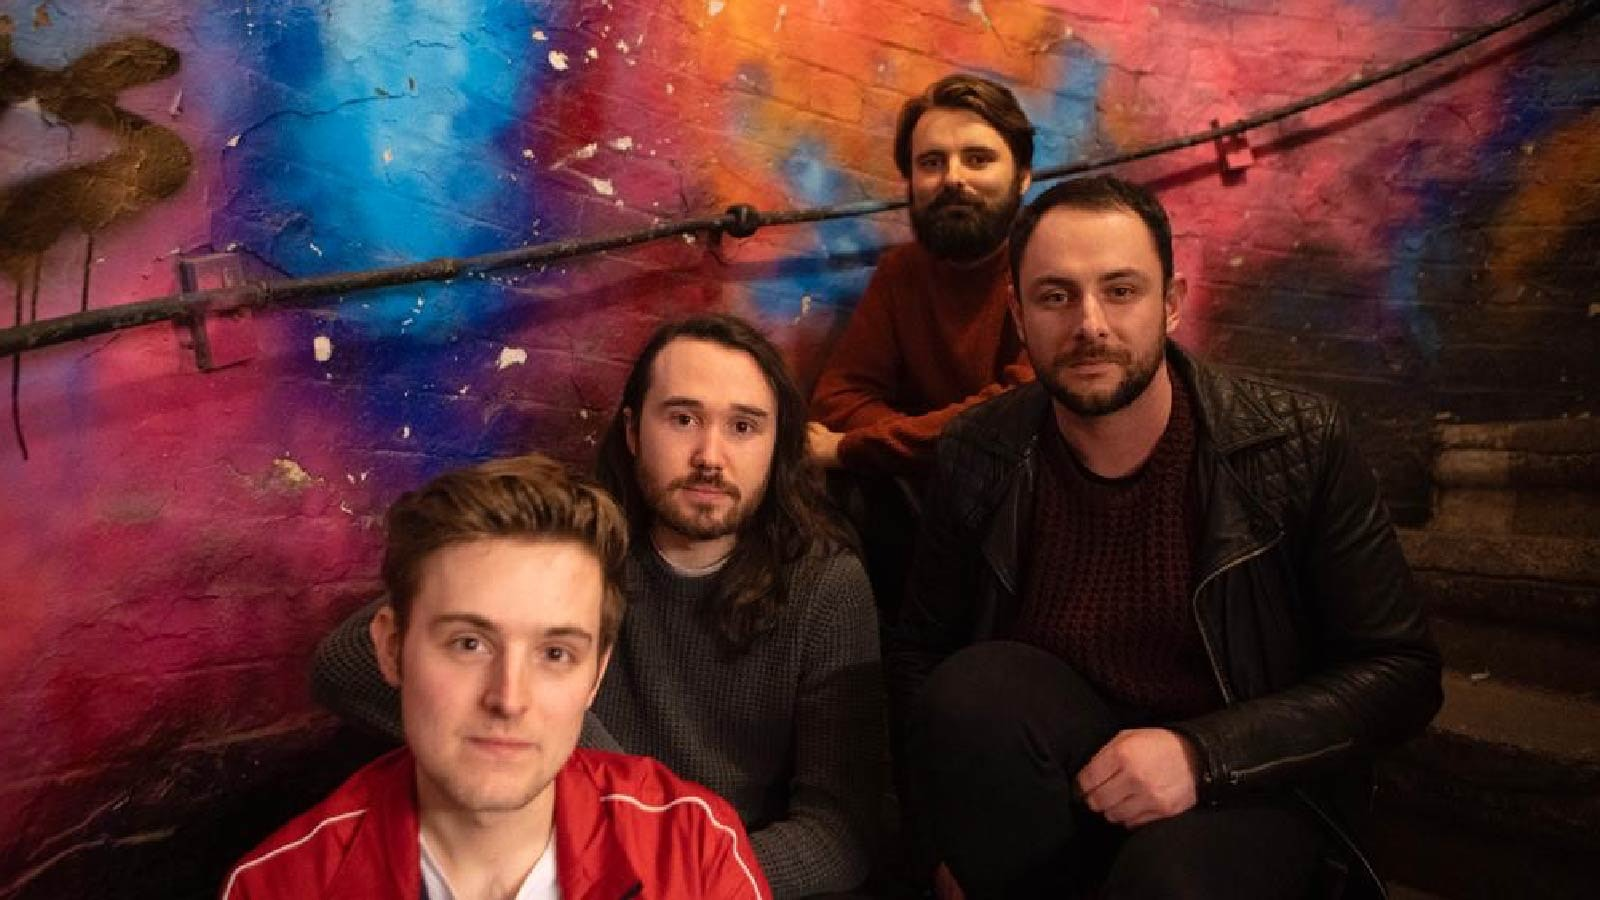 Cultures | Manchester, Band on the Wall